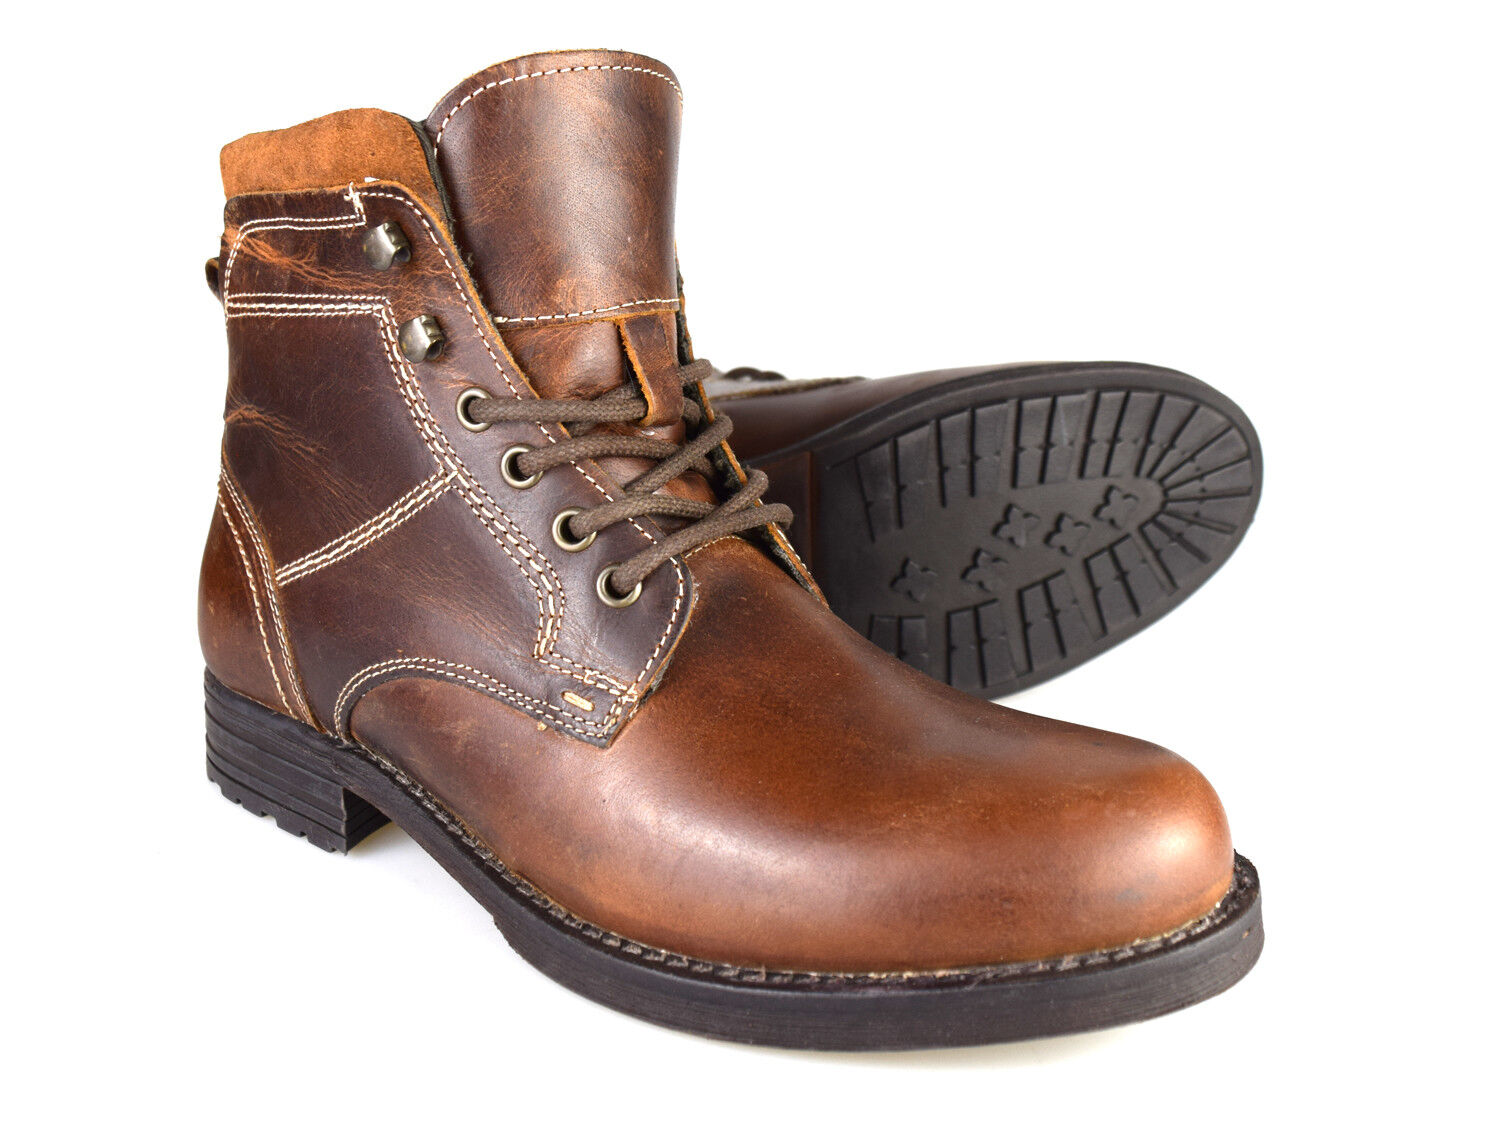 Red Tape Farley Men's Tan Brown Leather Worker Boots